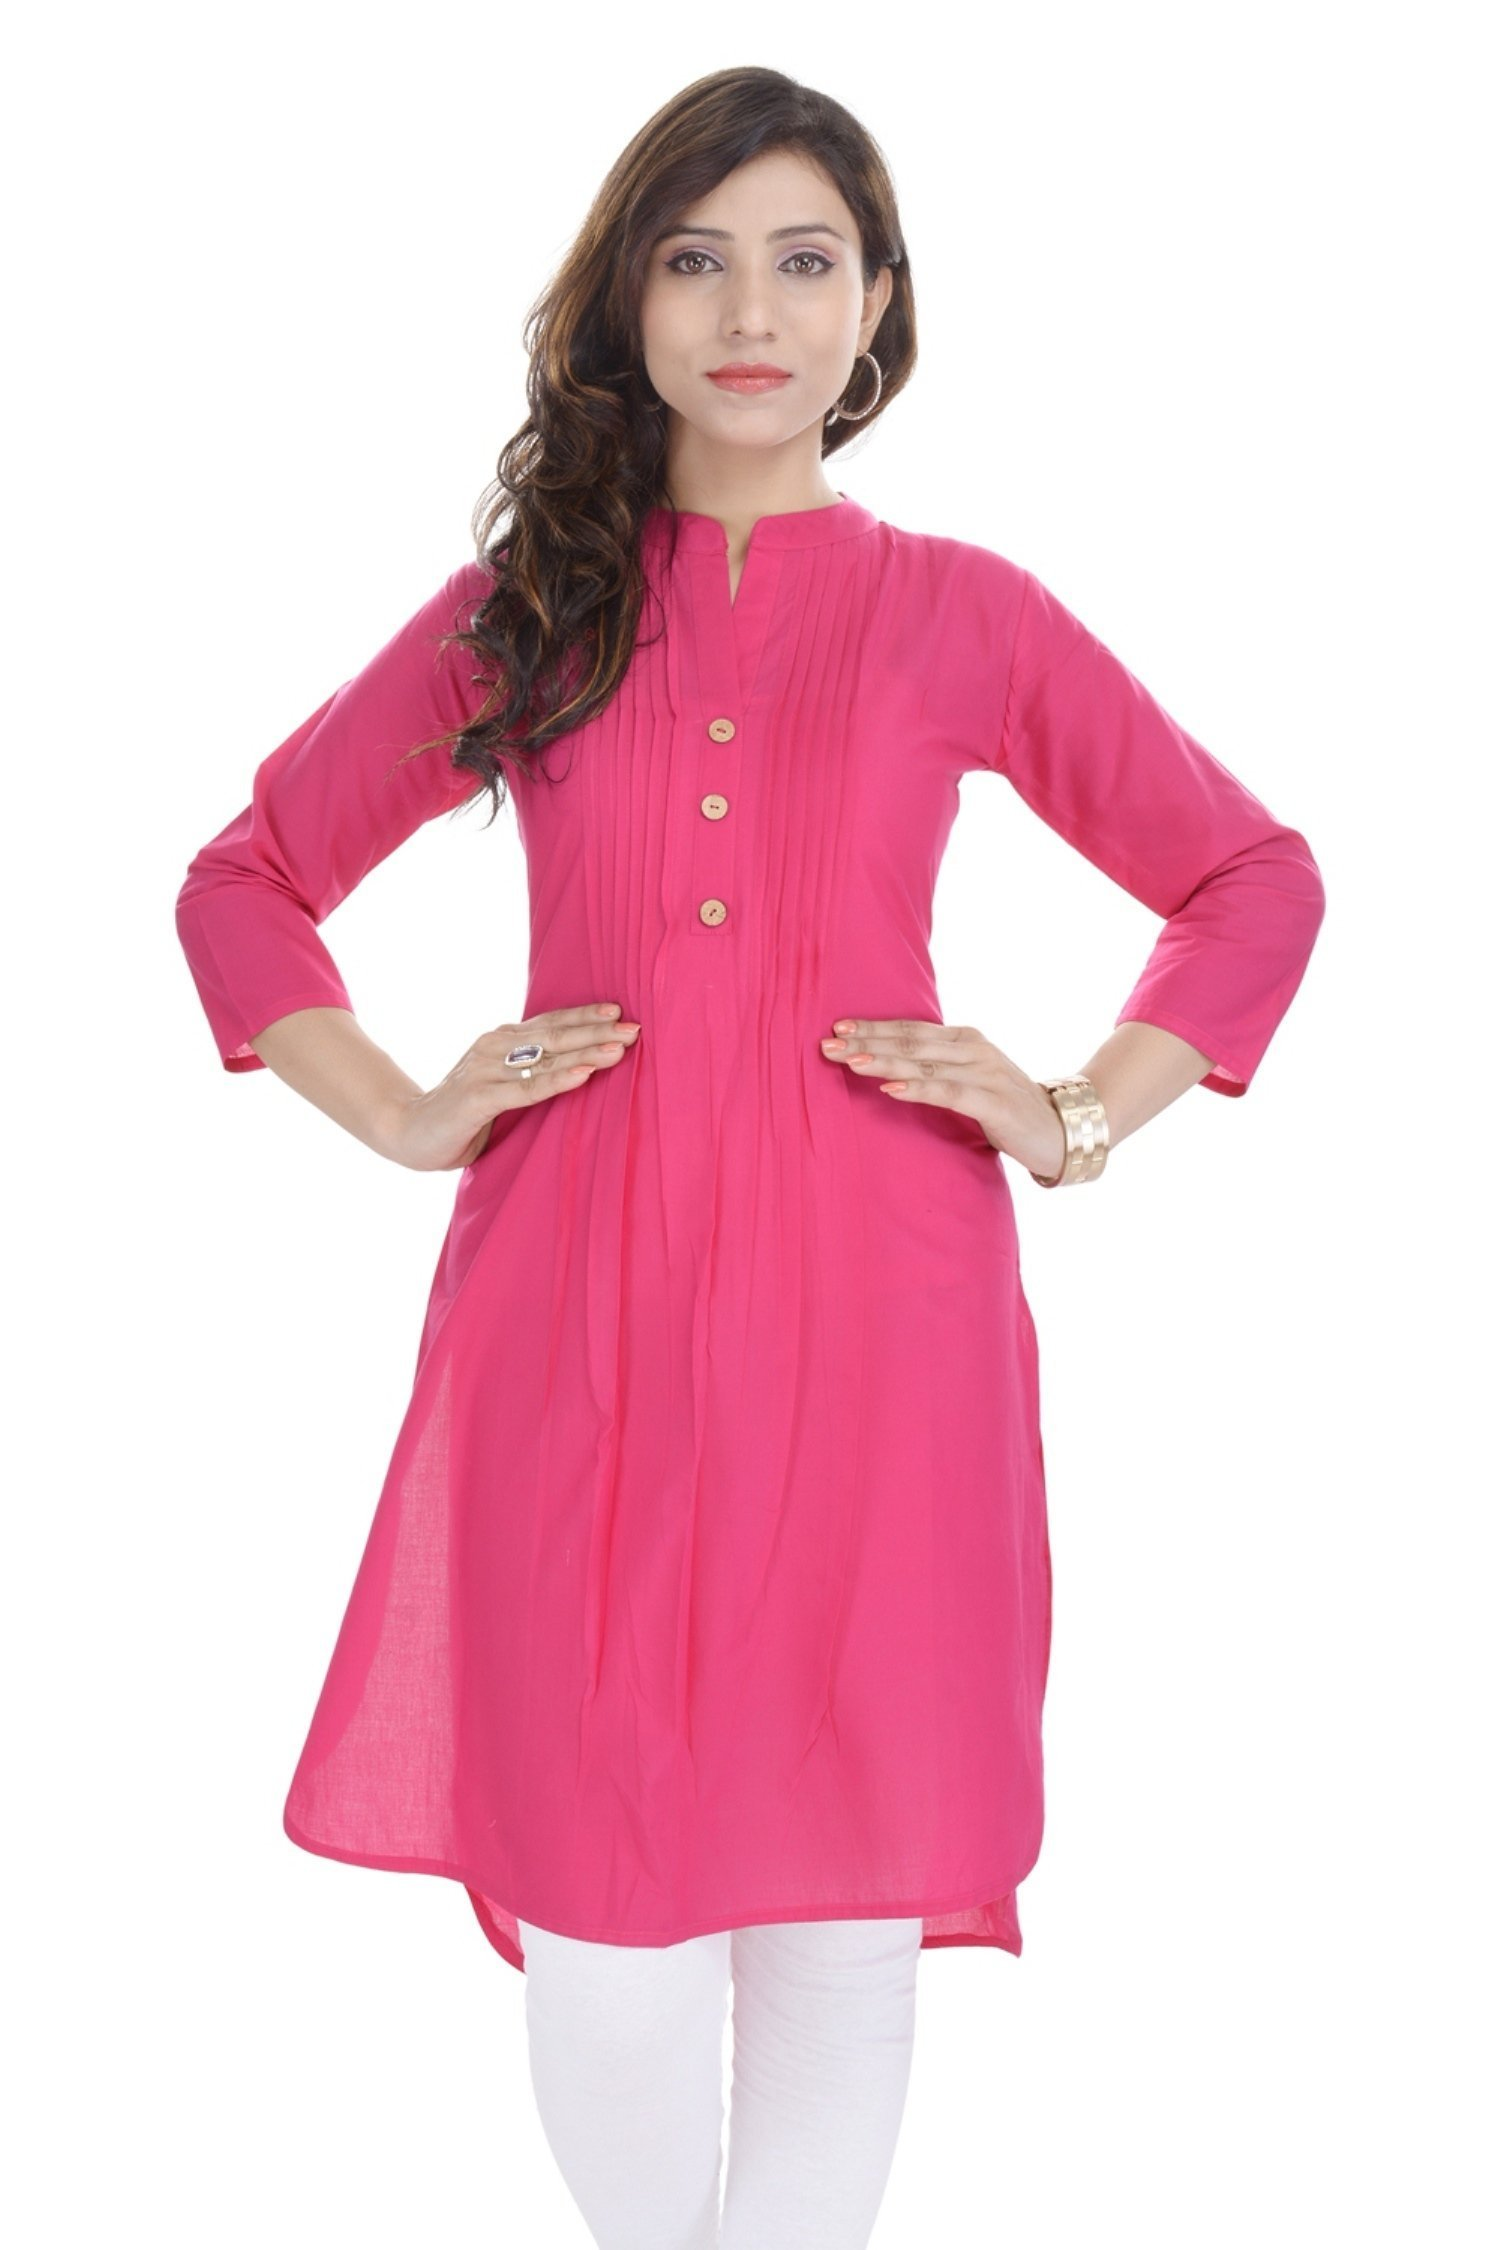 Chichi Embroidered Women's Tunic Top Kurti Blouse, Rose Red, M